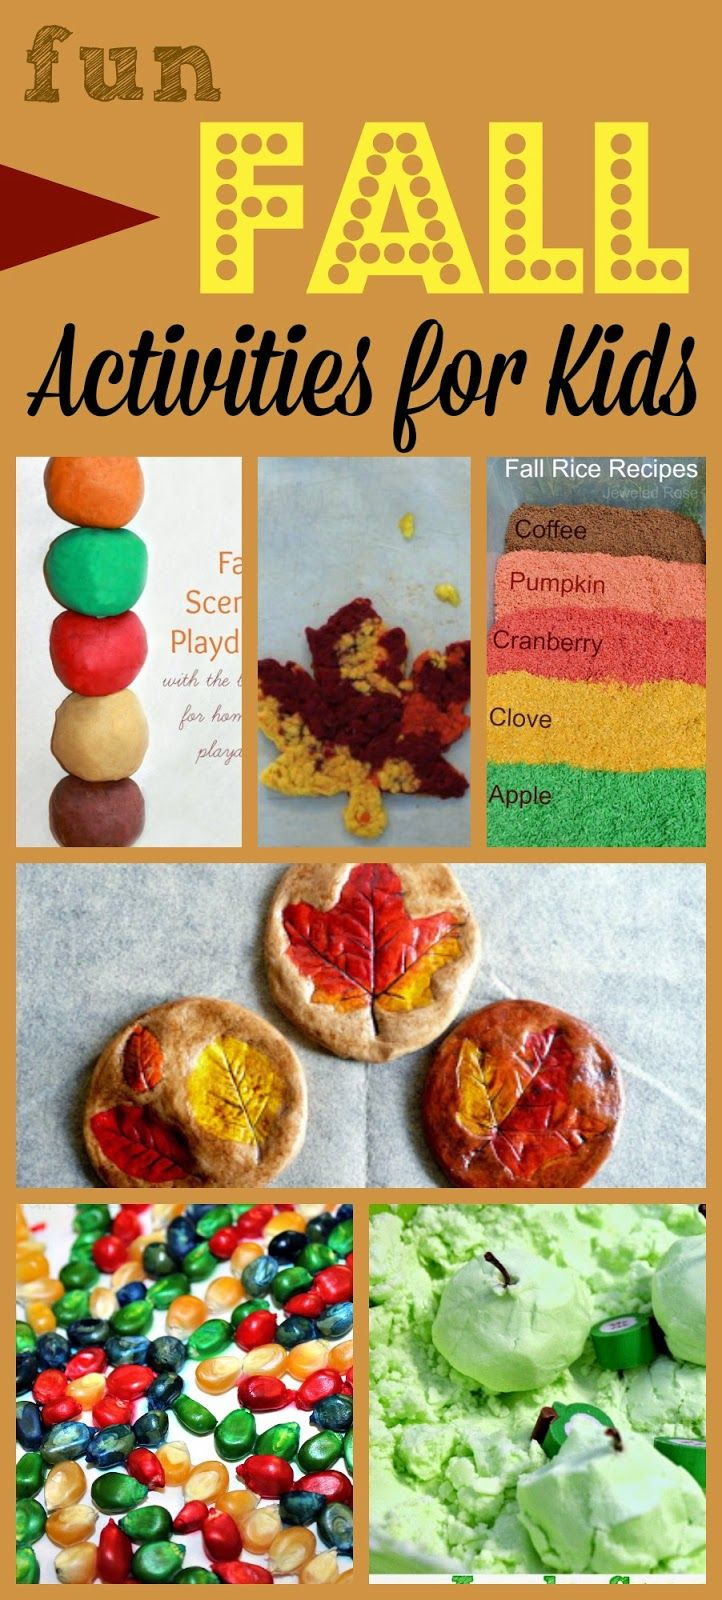 Fun Fall Activities for Kids via 123 Homeschool 4 Me